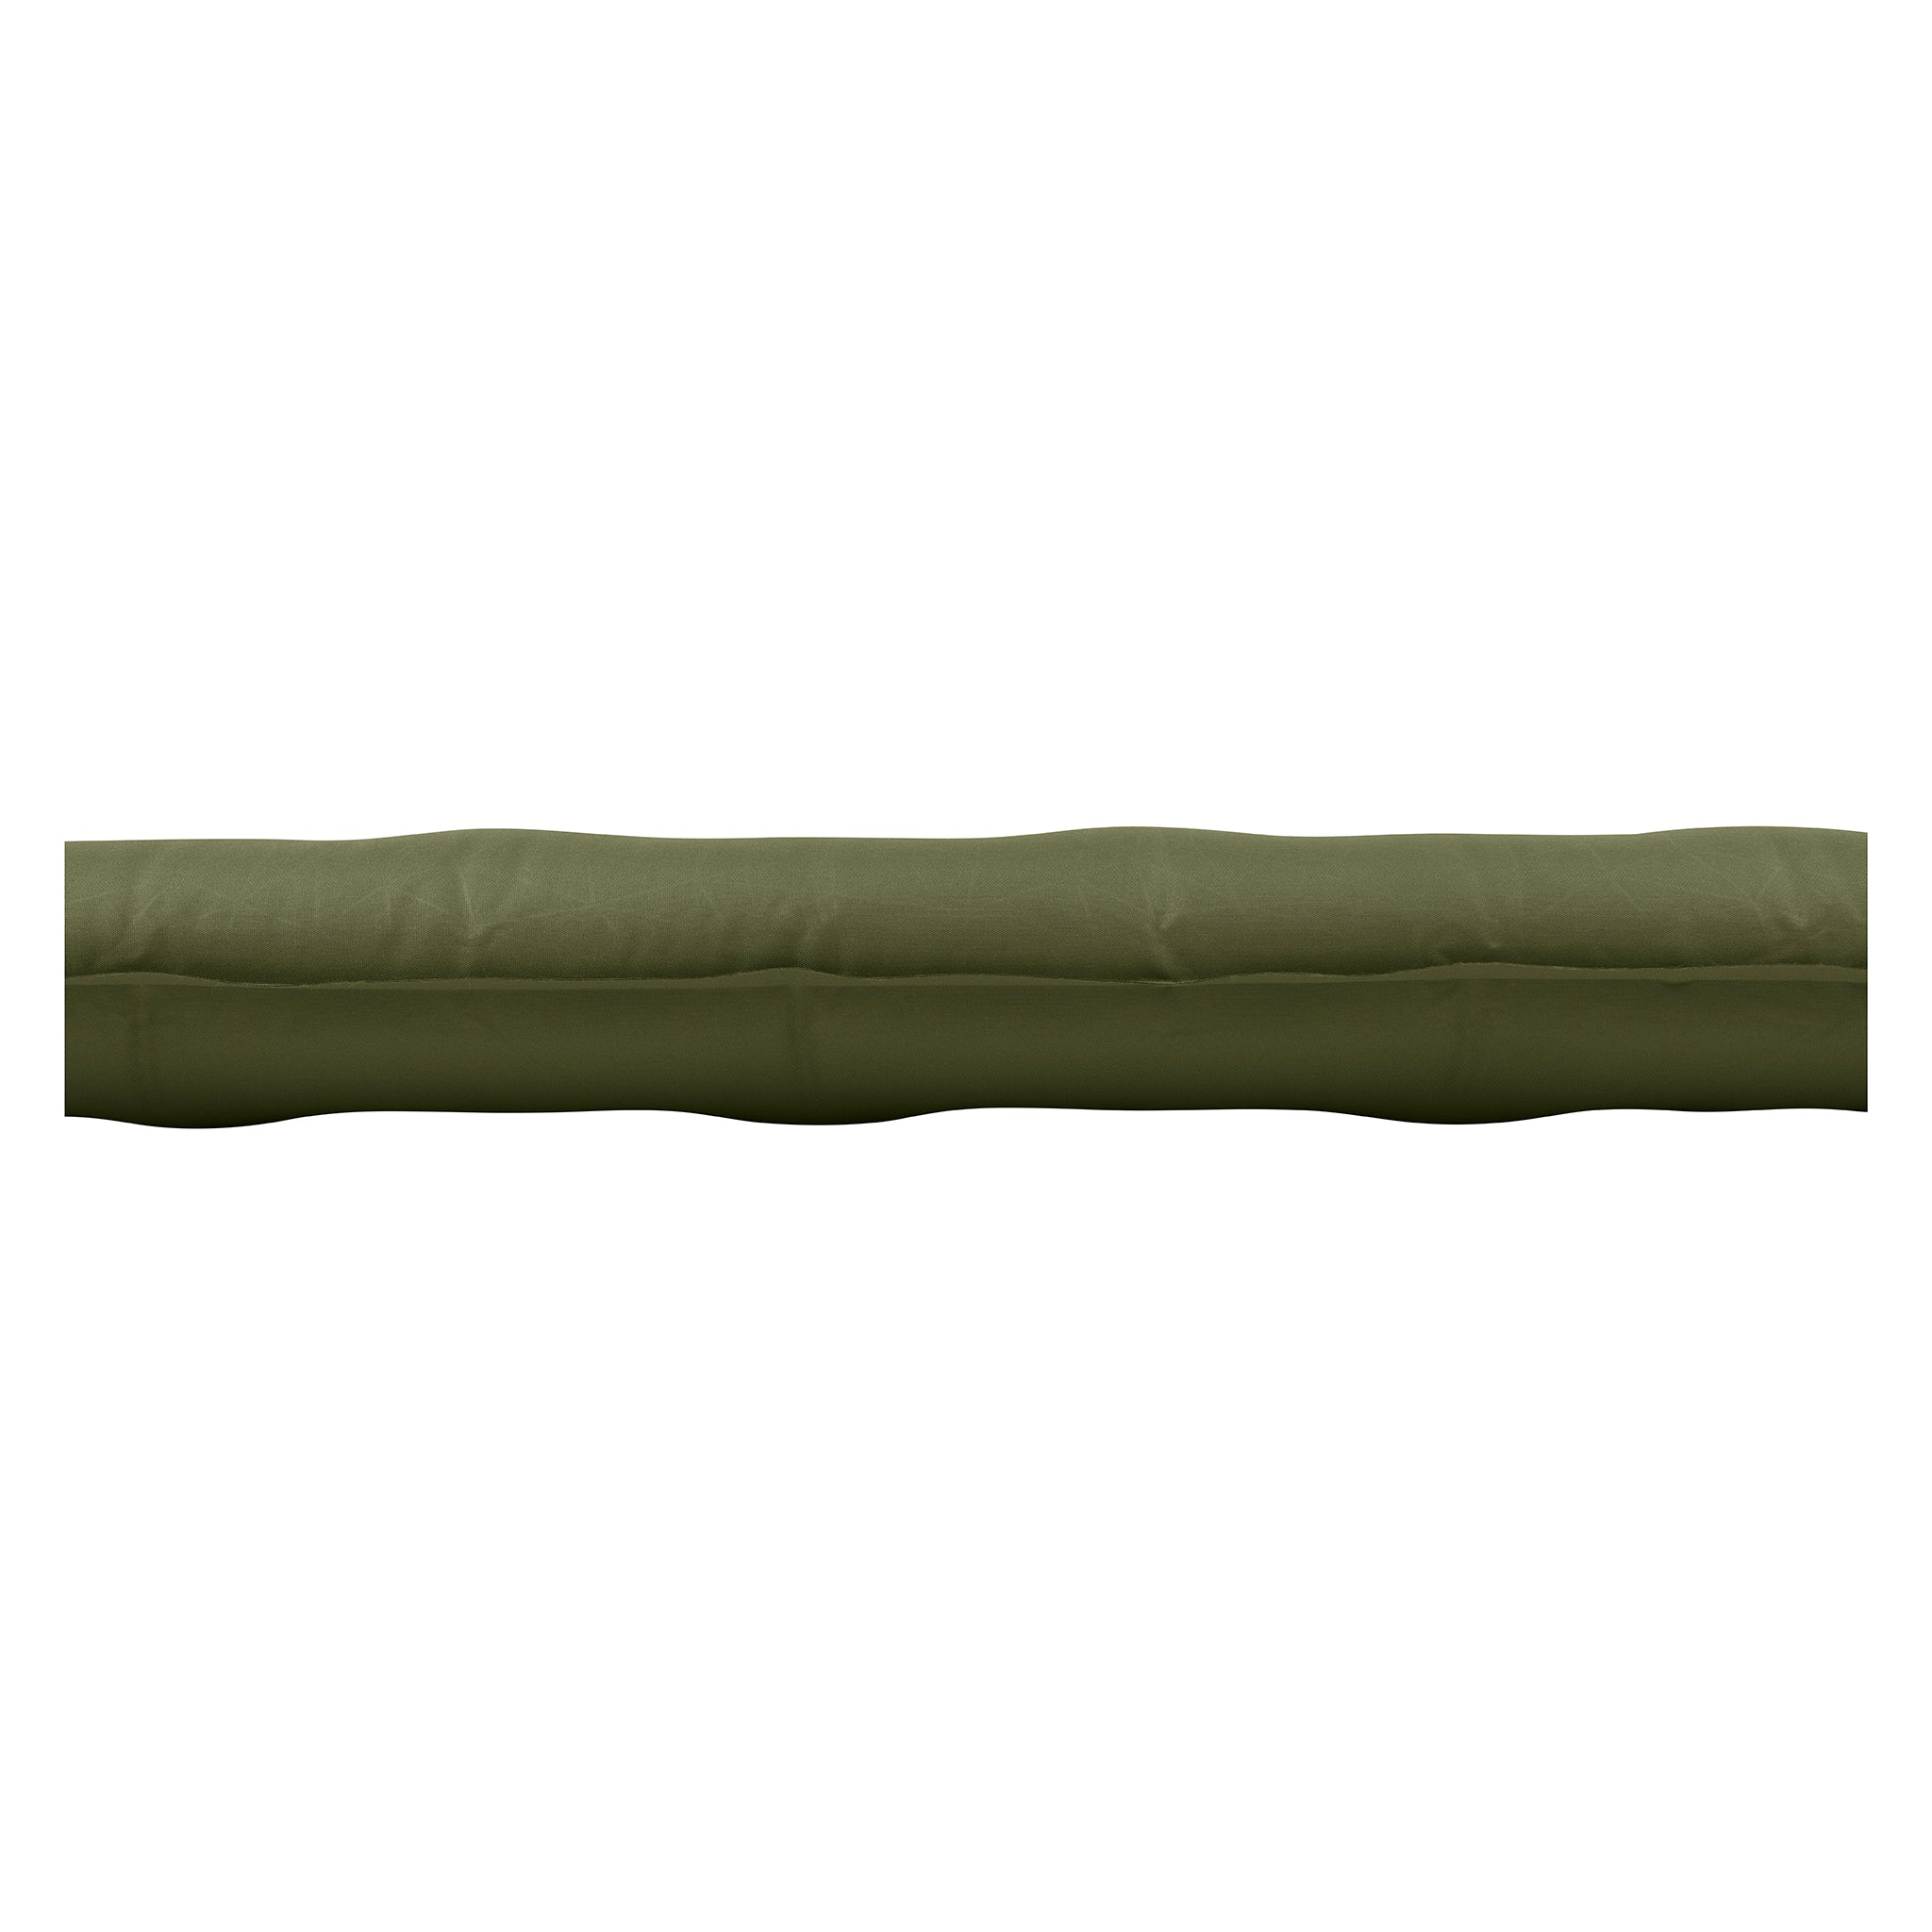 Camp Plus Self-Inflating Sleeping Mat